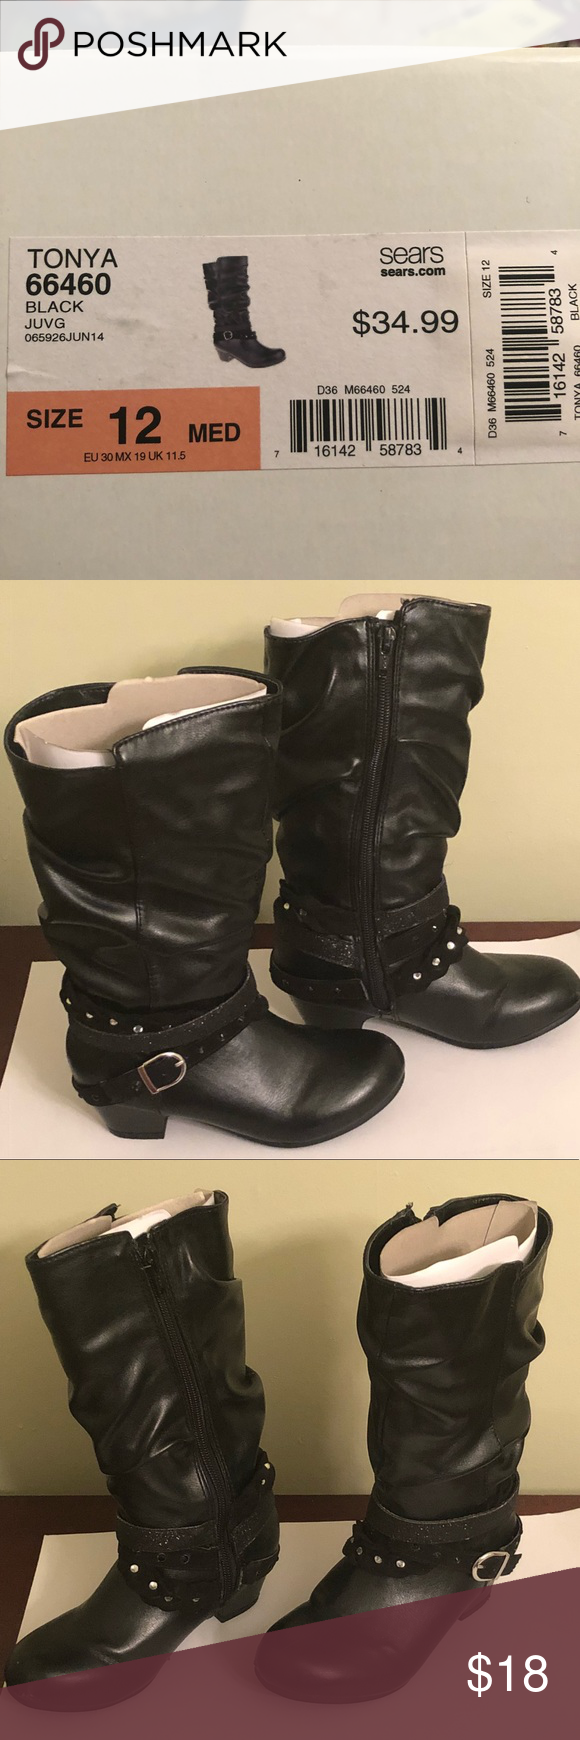 Toddler Girls Bongo Boots Black Size 12 Boots Black Boots Heeled Boots